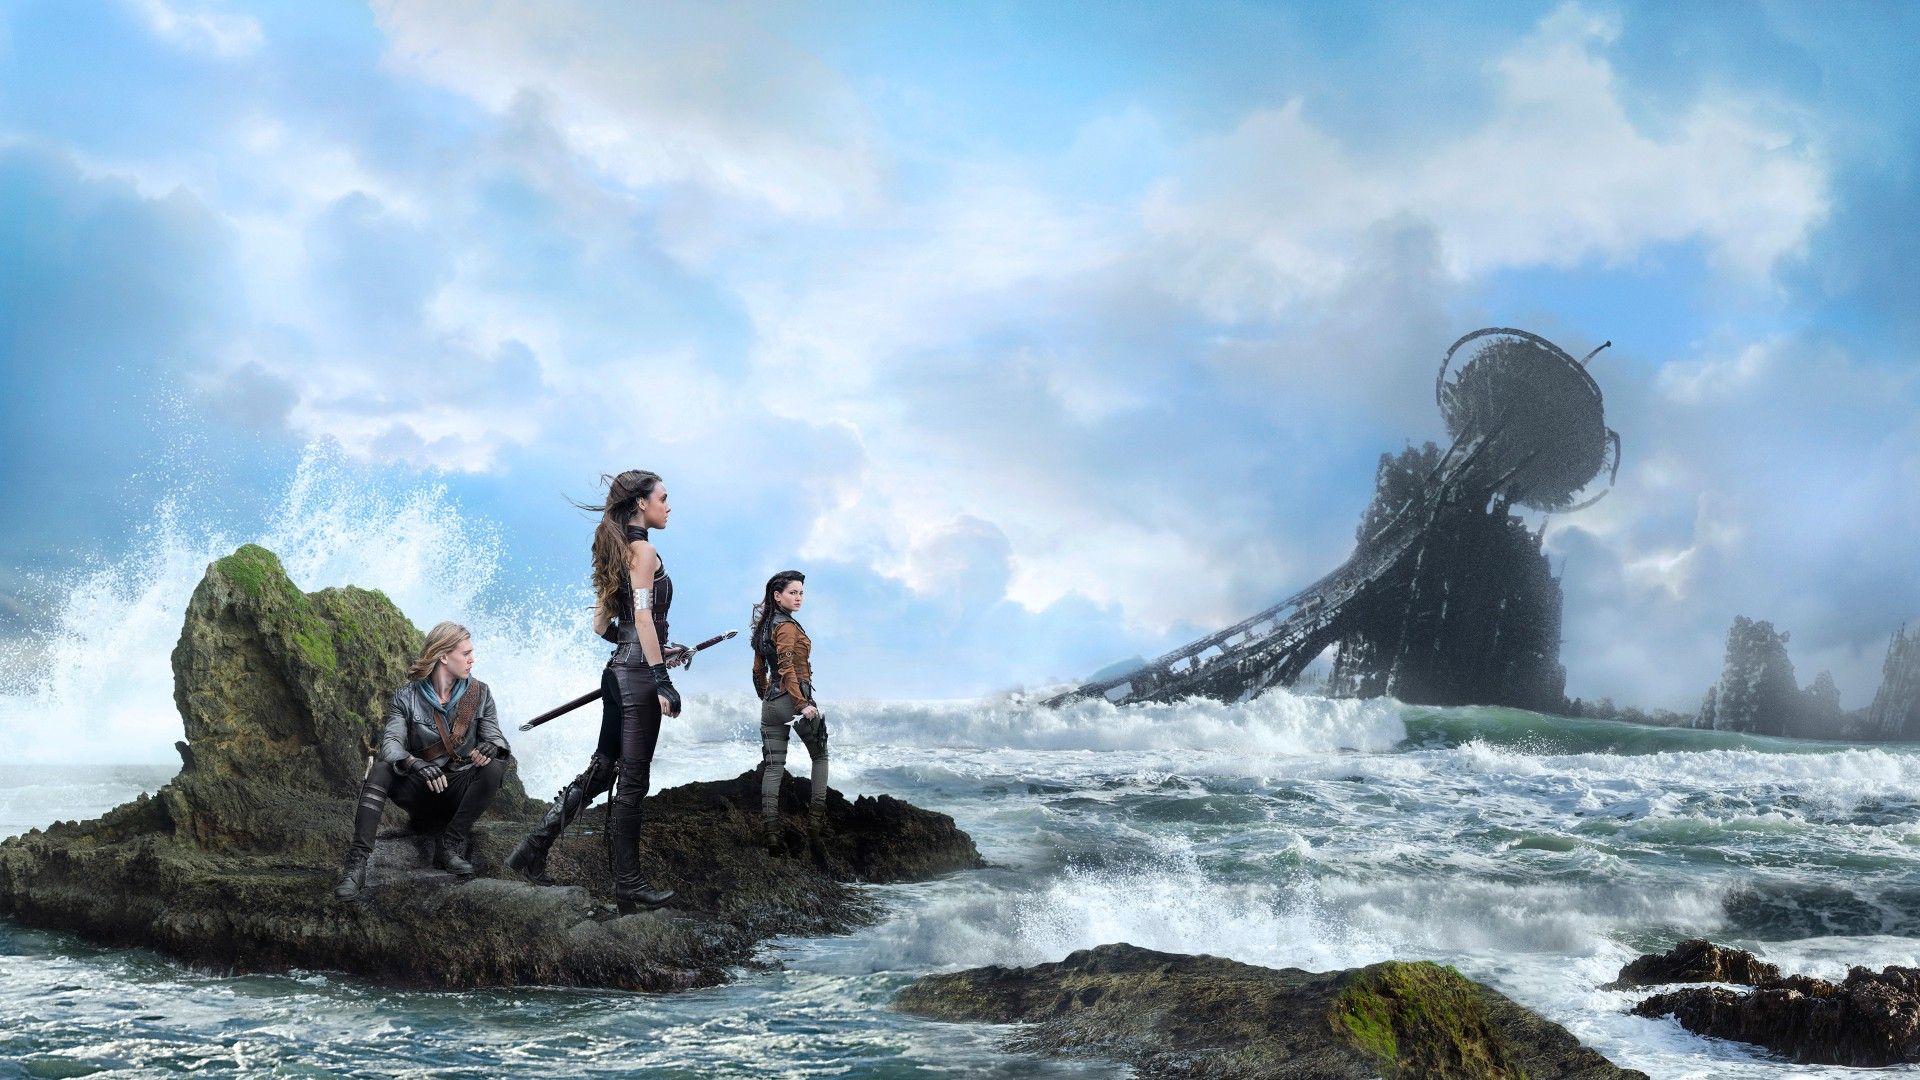 Music Wallpaper Iphone 6 The Shannara Chronicles Wallpapers Hd Wallpapers Id 16730